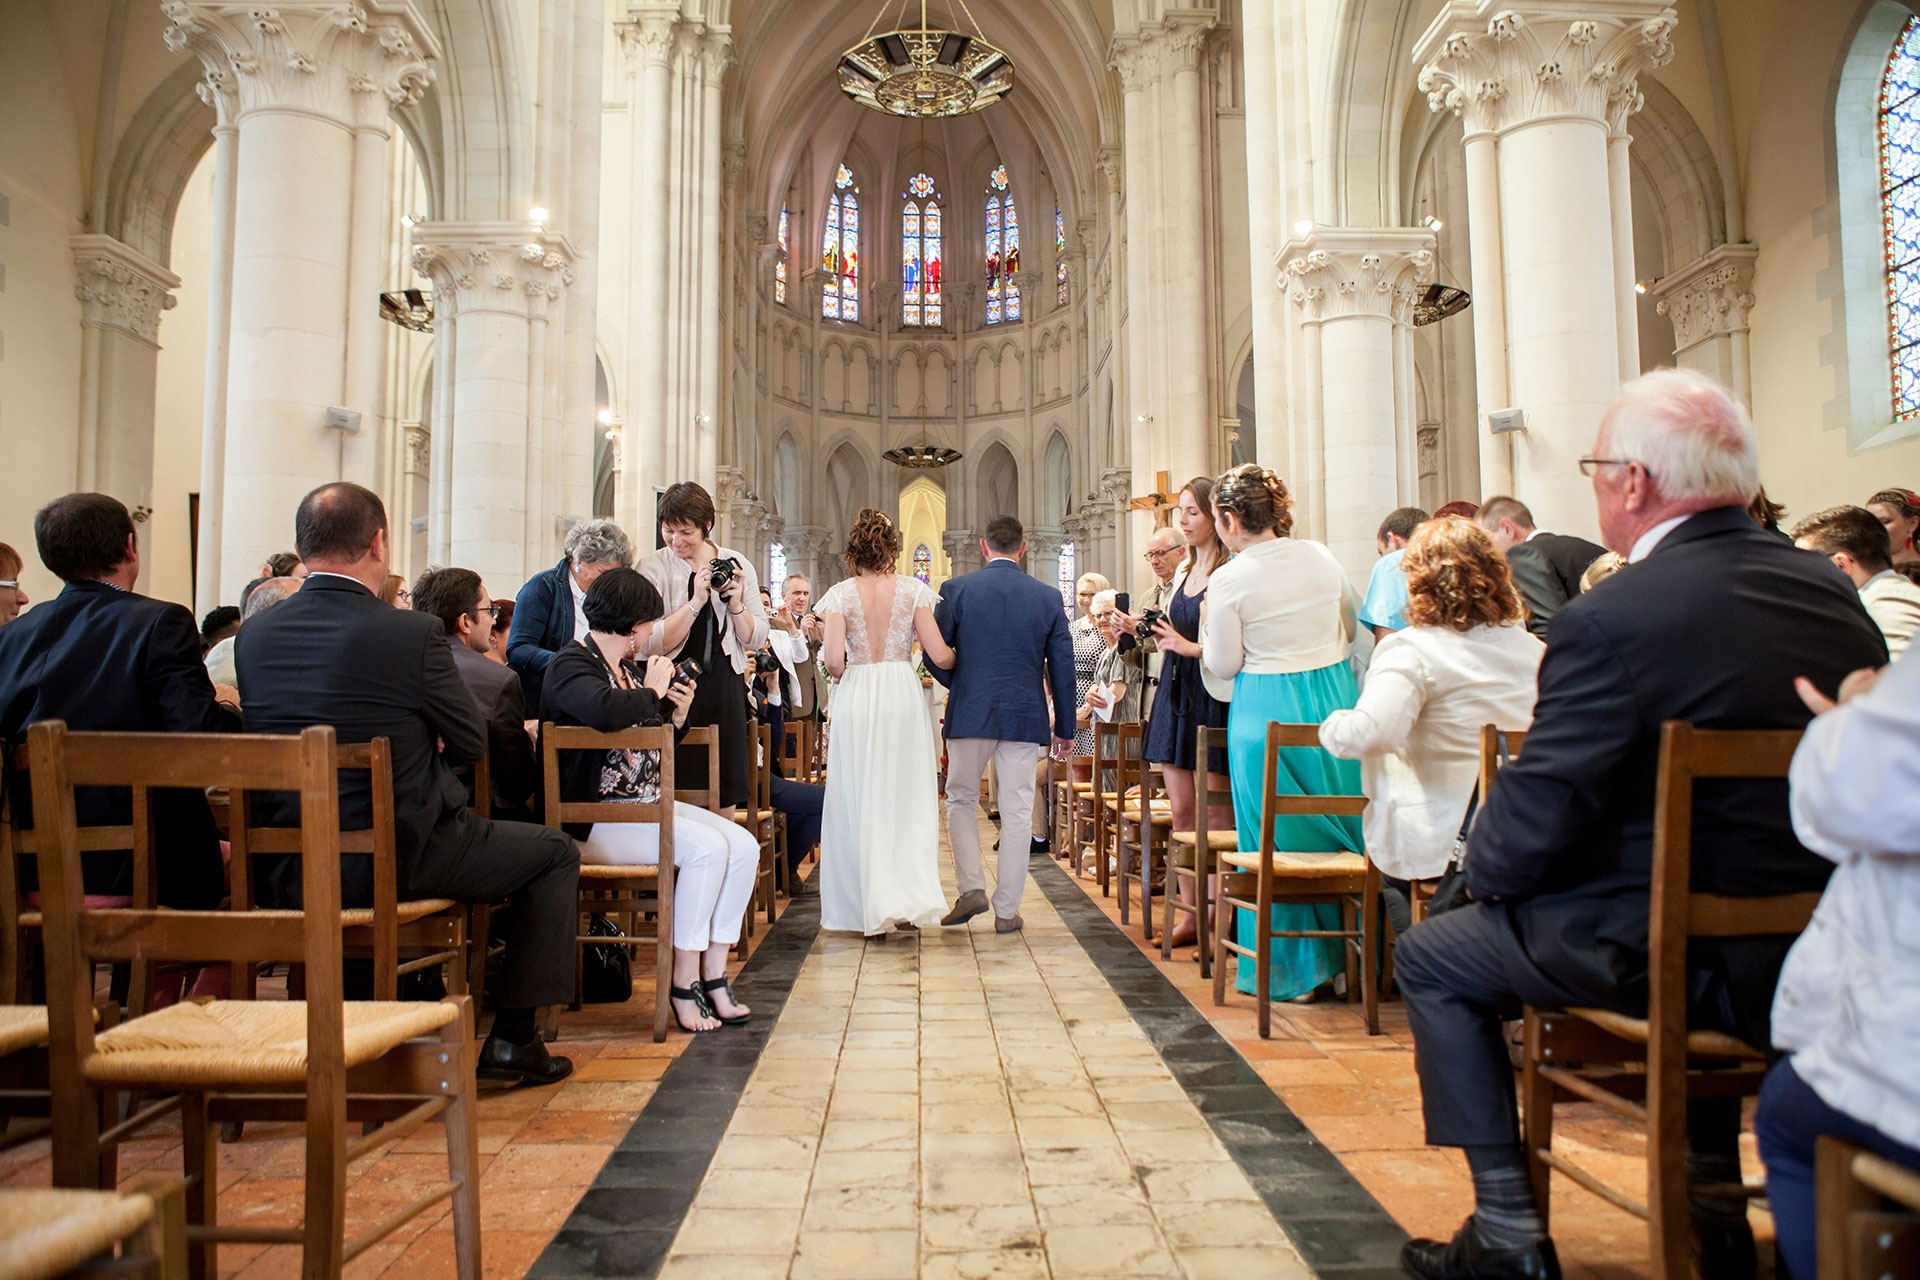 particuliers-evenements-mariages-oui-clementine&alexandre-29